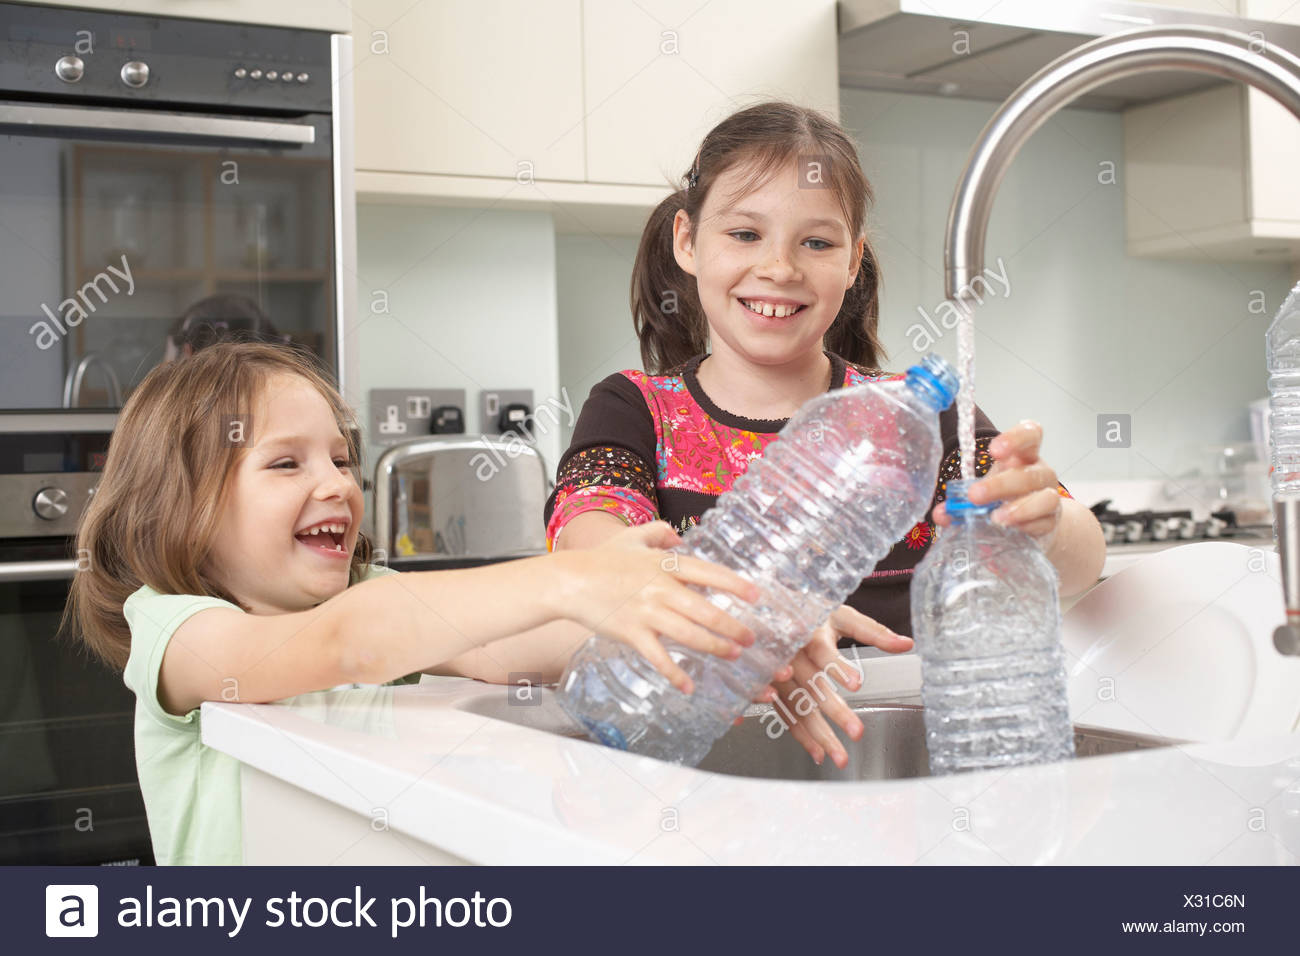 Girls filling up water bottle in kitchen Stock Photo